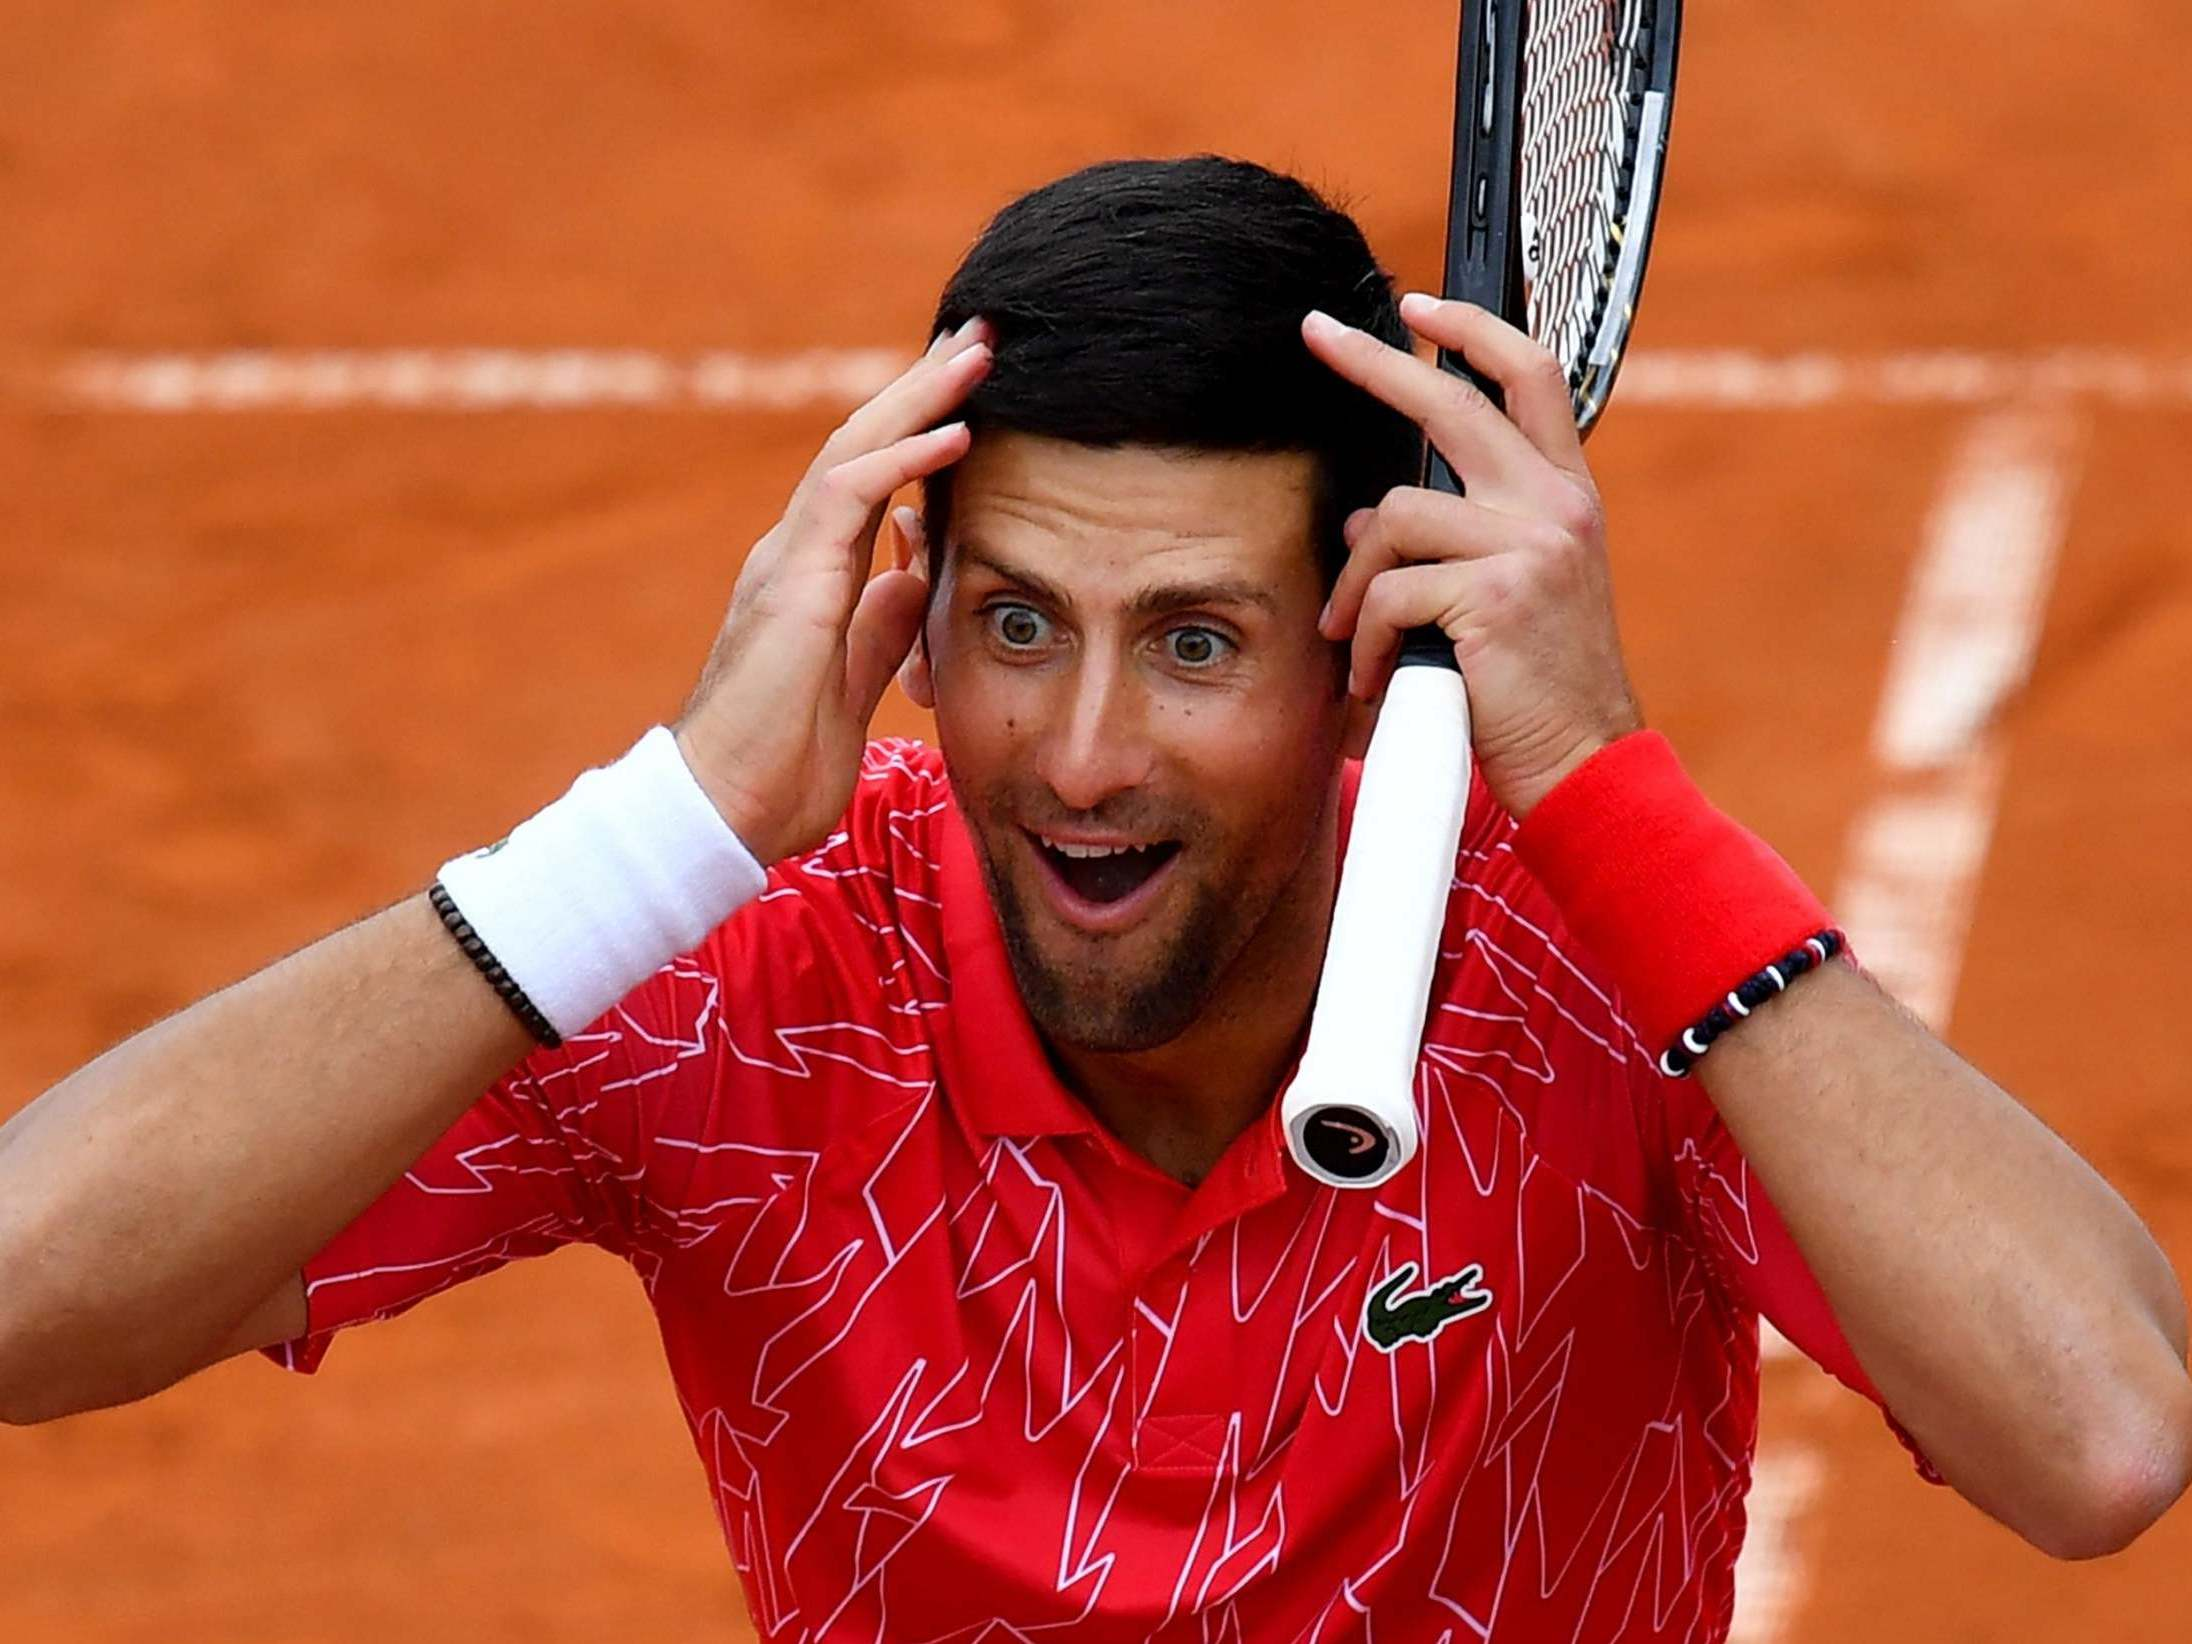 Novak Djokovic Lacked Common Sense In Organising Ill Fated Adria Tour The Independent The Independent